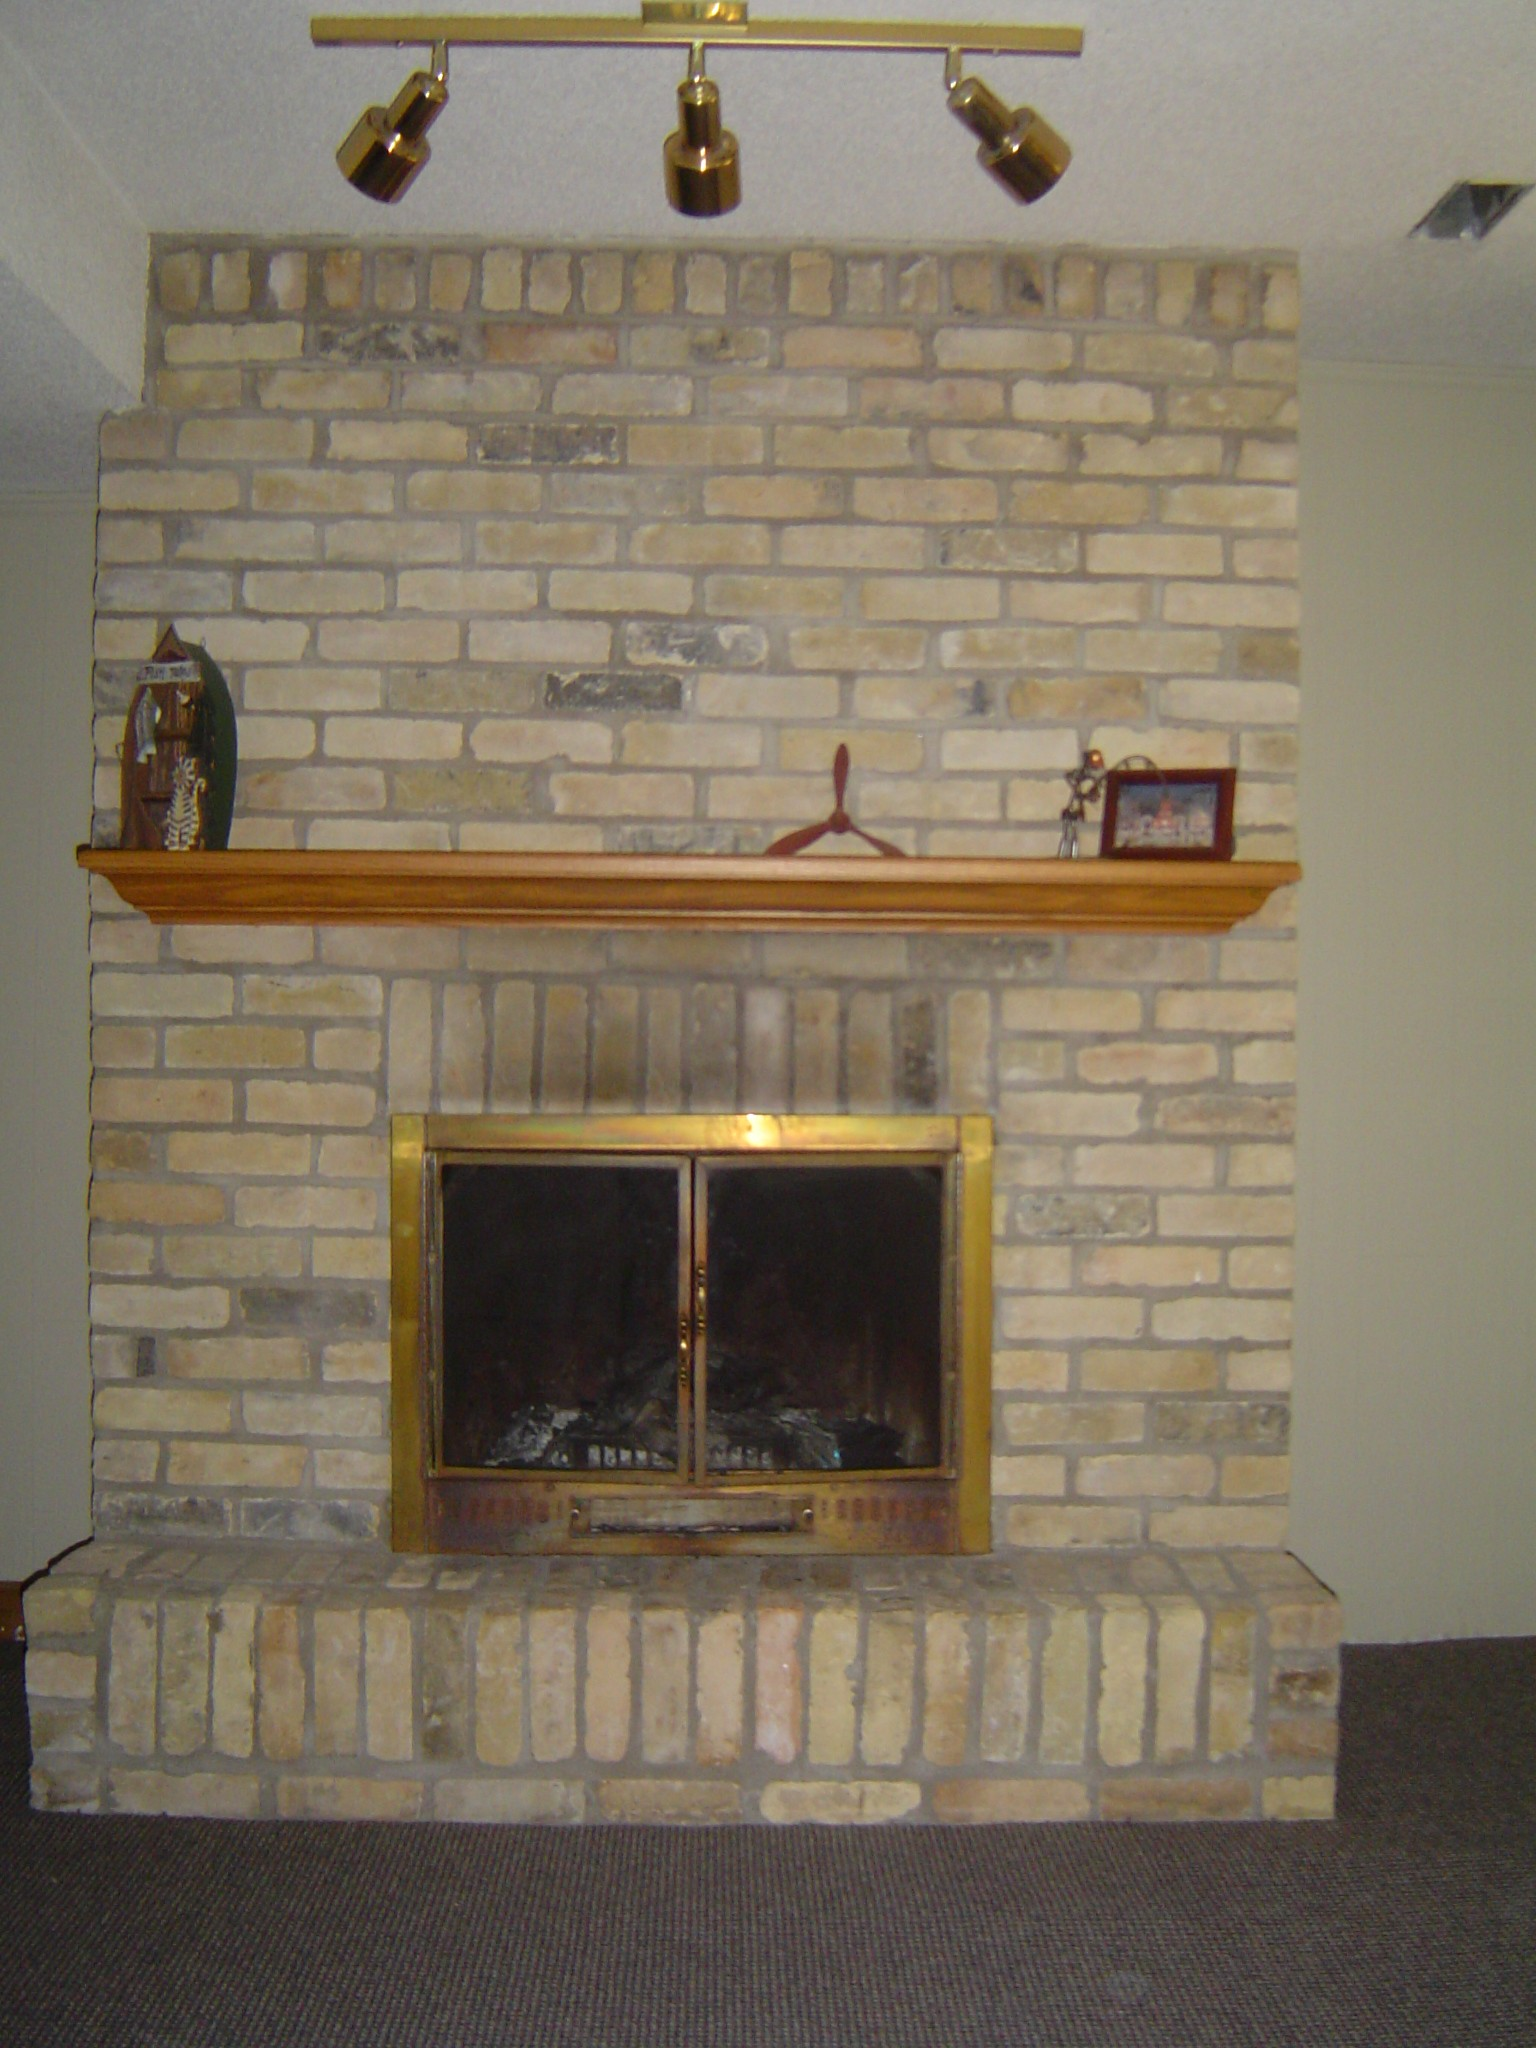 Floor to ceiling reclaimed yellow brick fireplace